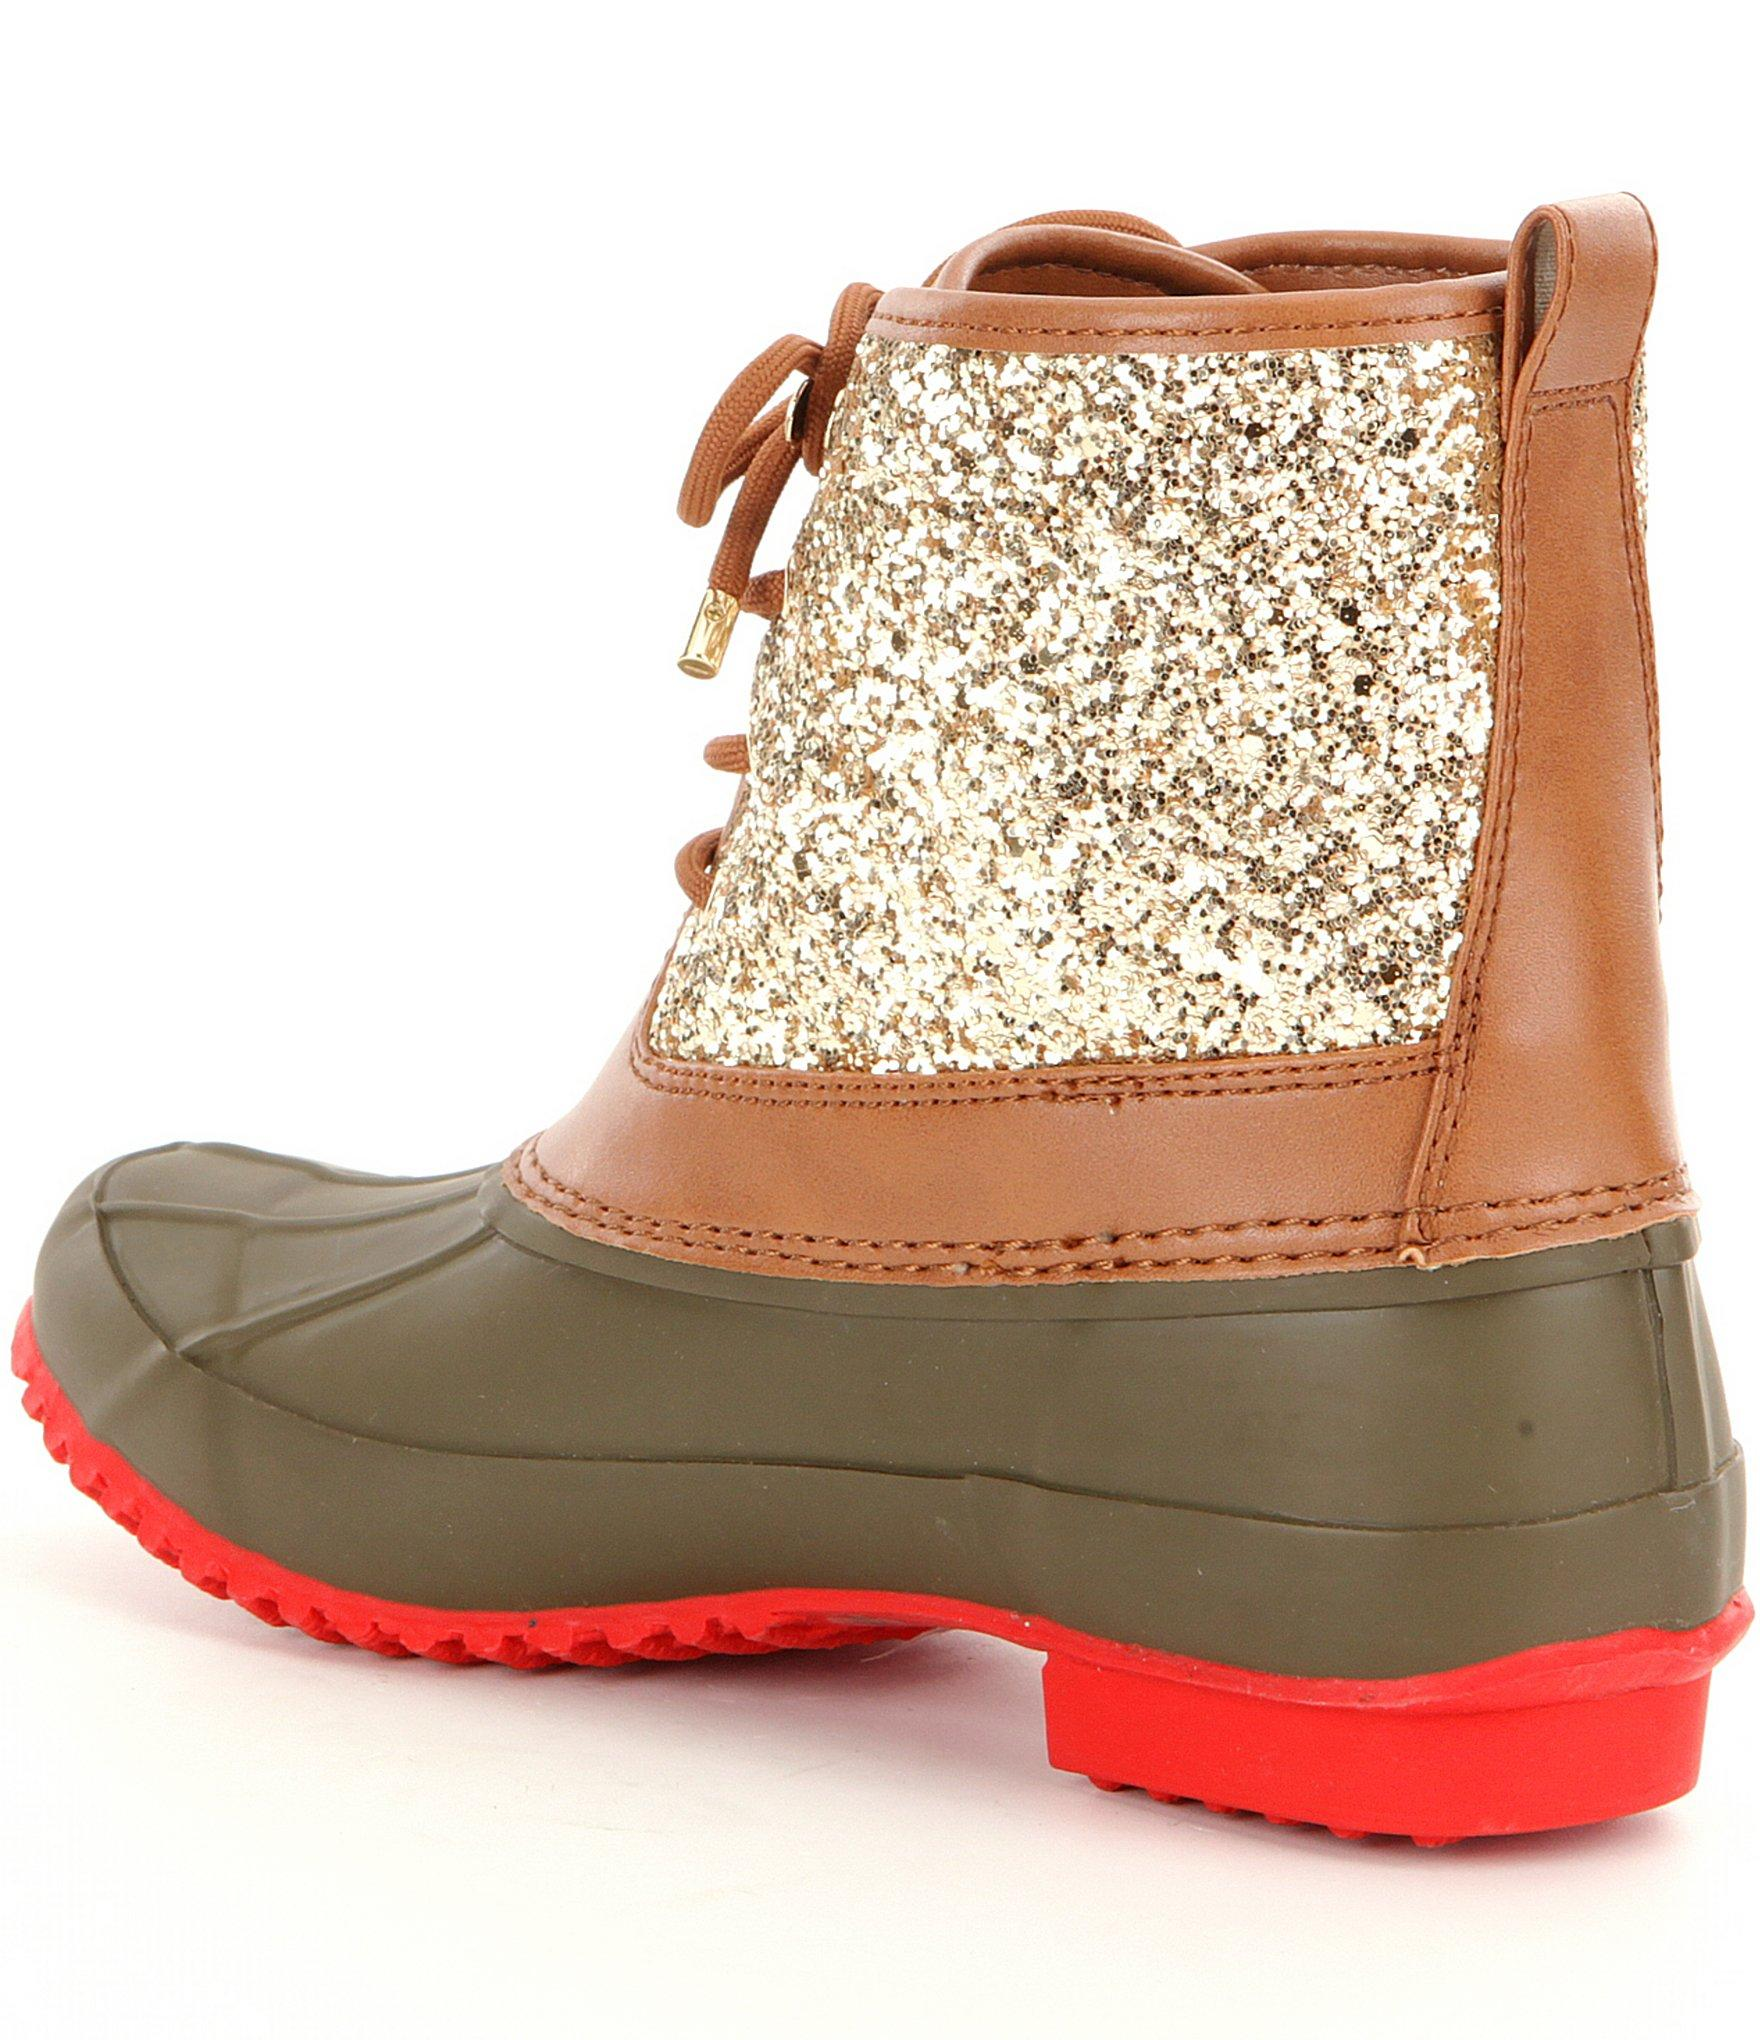 8d207a0444ca Womens Glitter Duck Boots - Best Picture Of Boot Imageco.Org